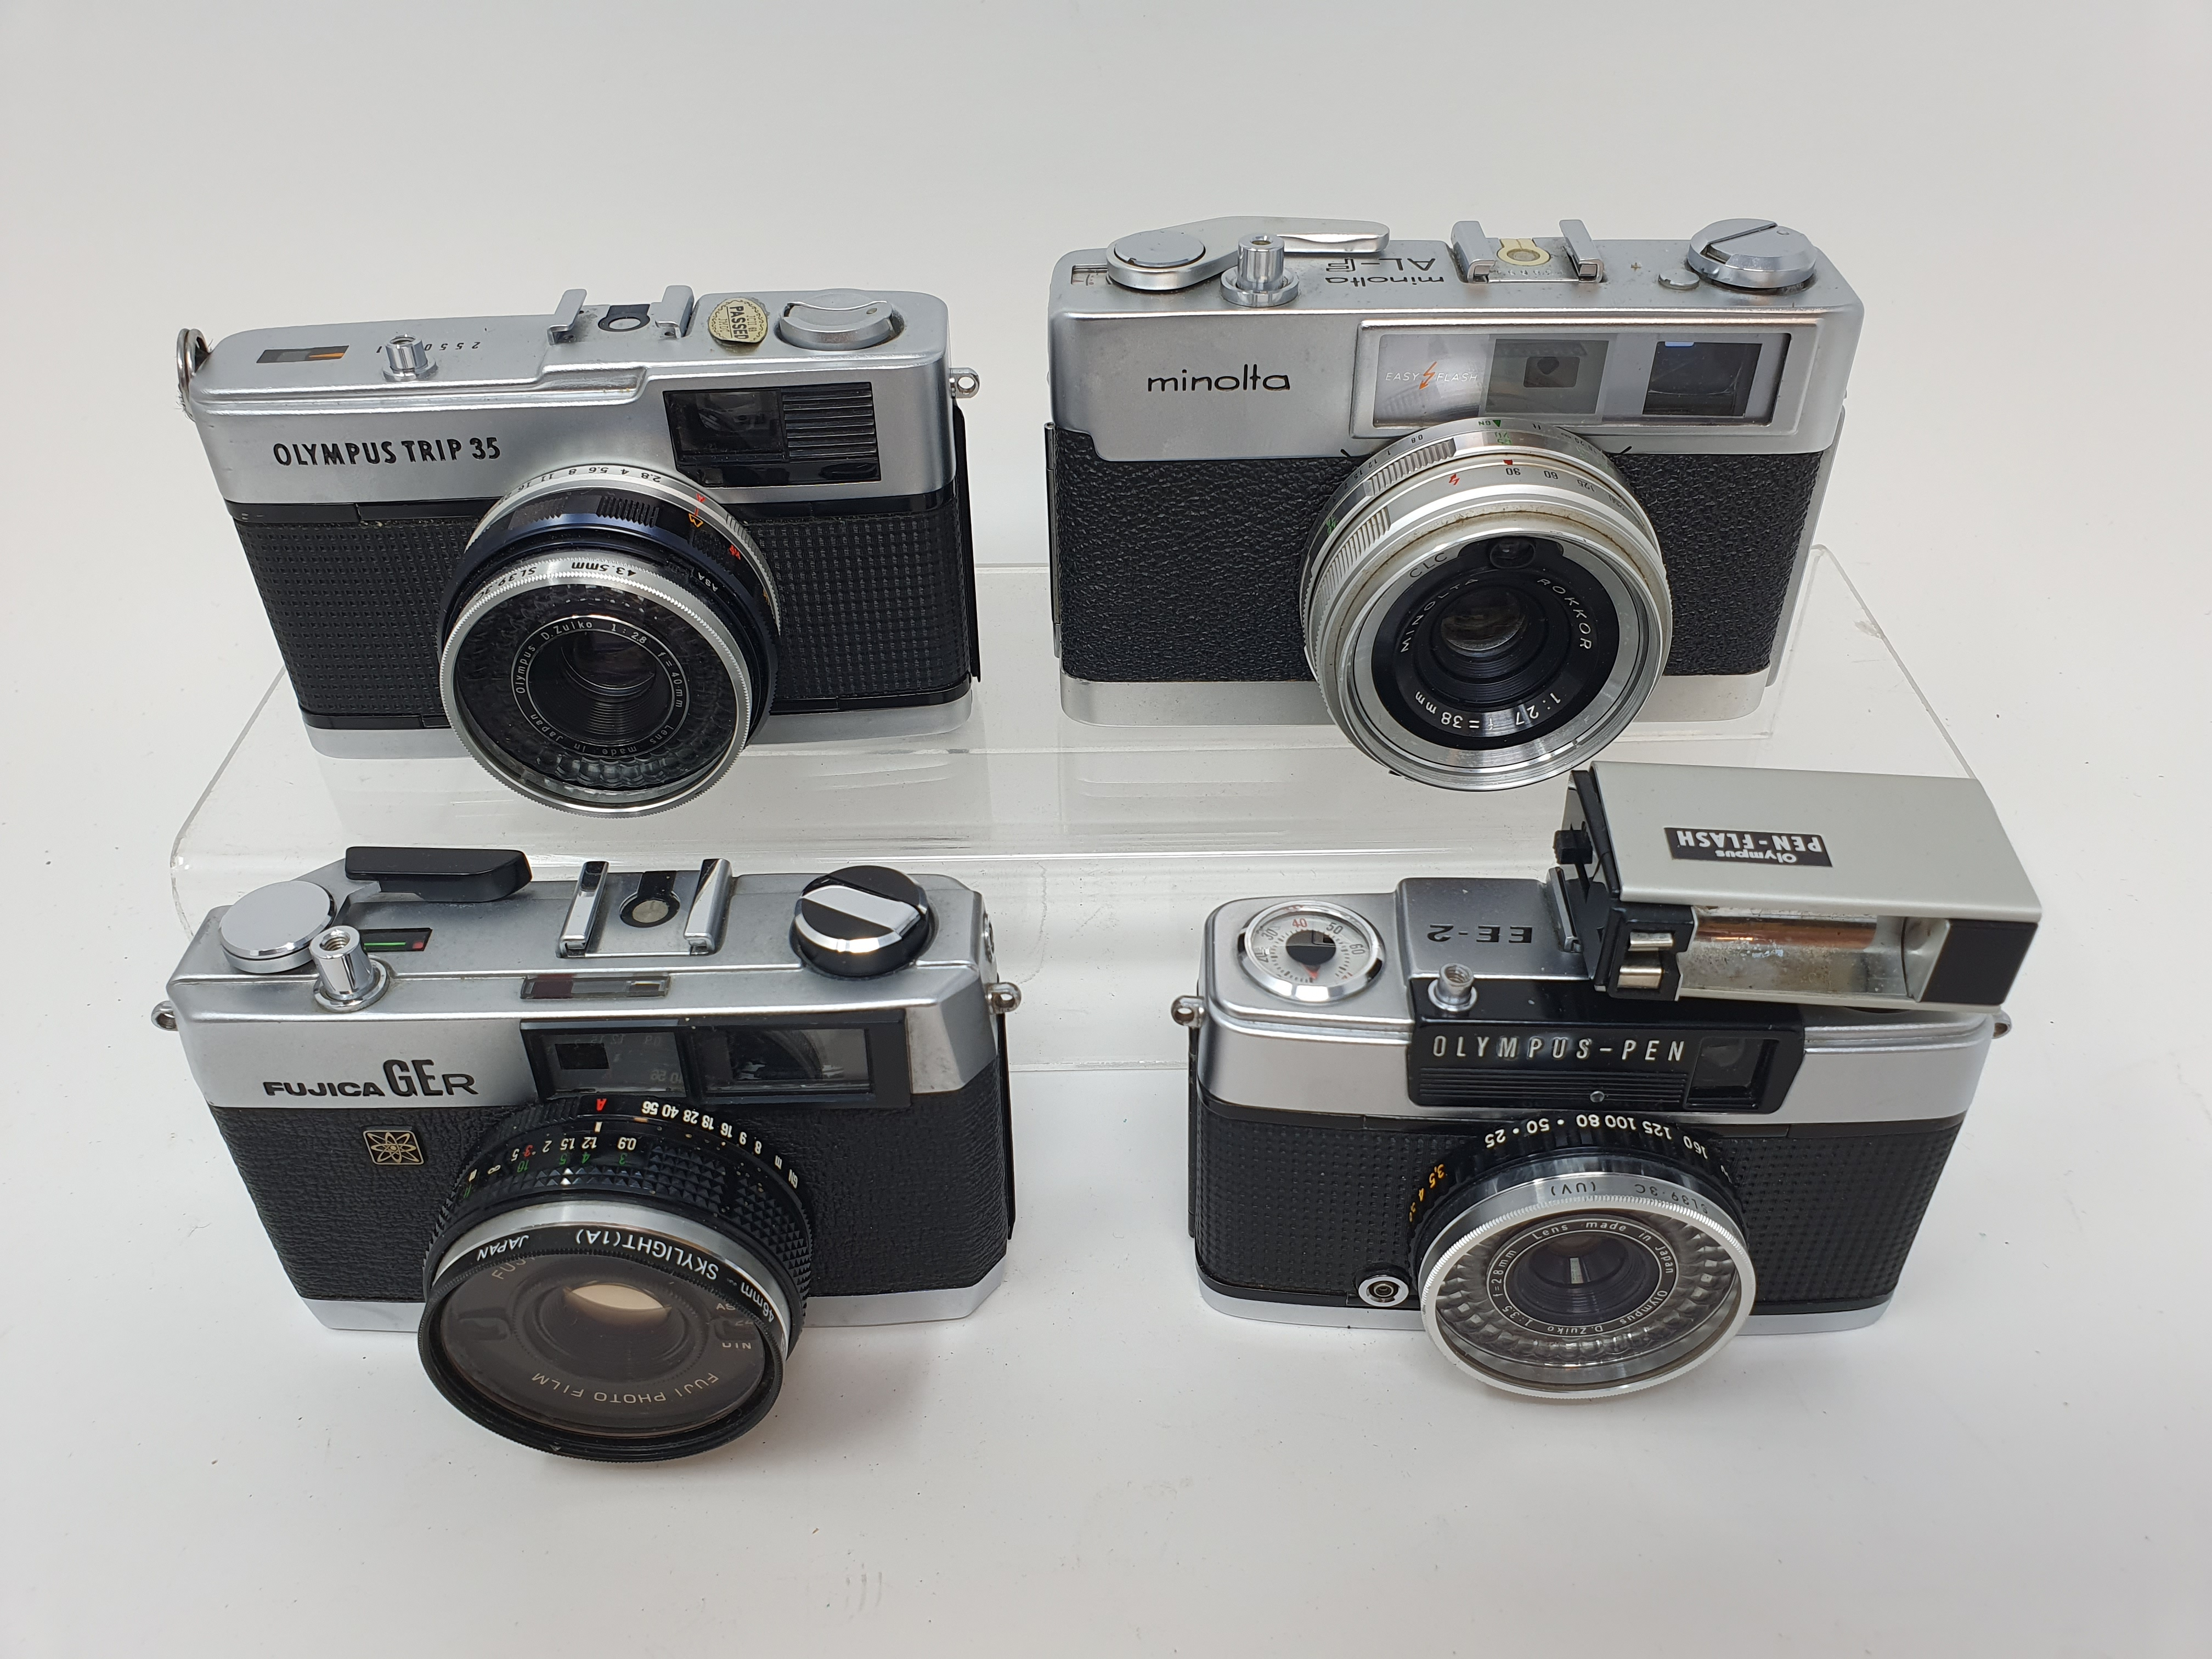 An Olympus Trip 35 camera, an Olympus - PEN camera a Fujica GER camera and a Minolta AL - F - Image 2 of 2